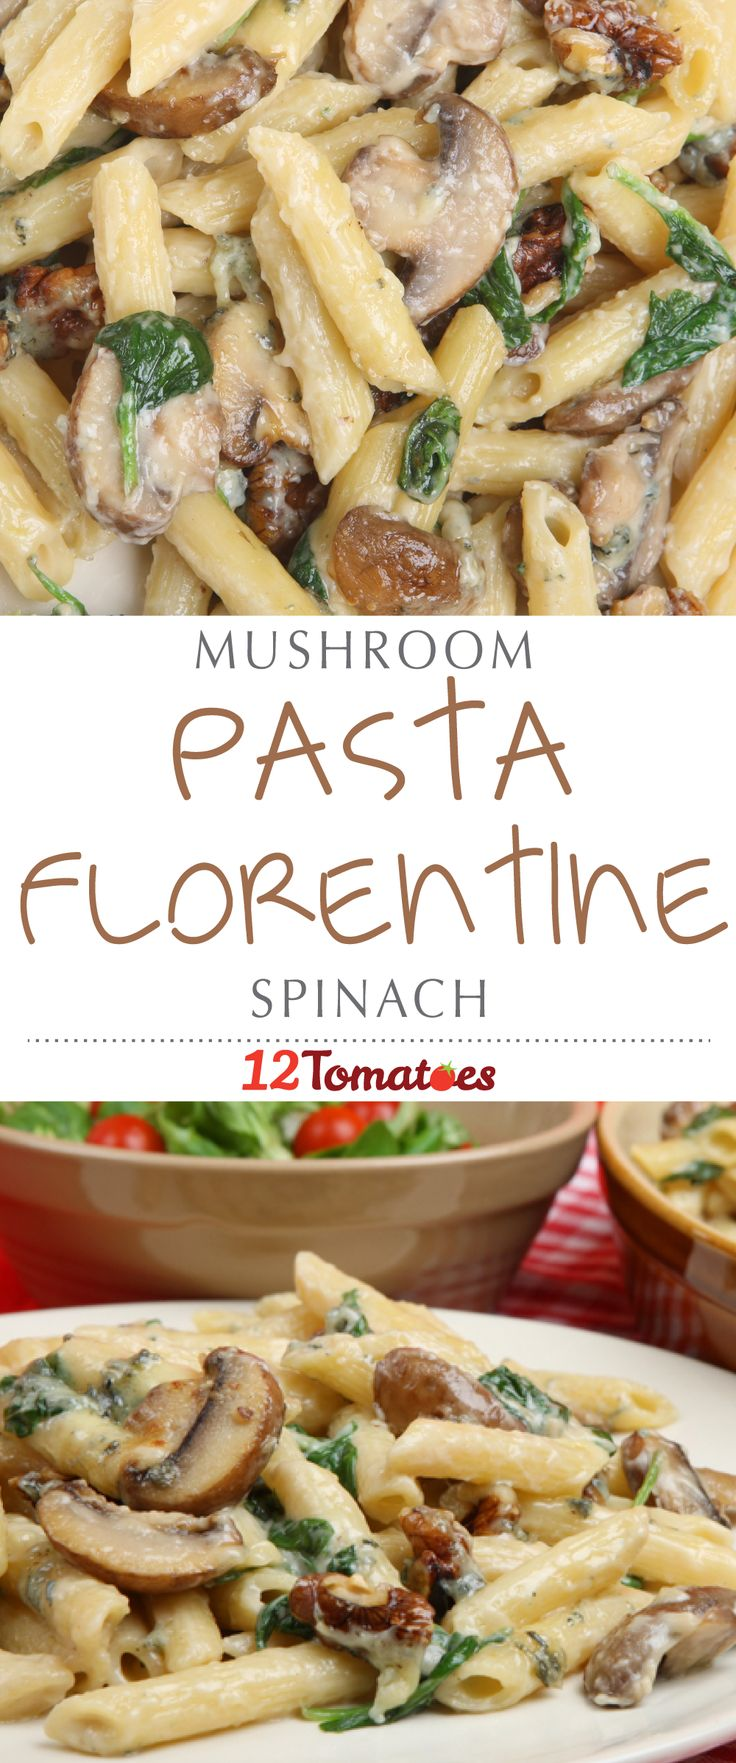 """Pasta Florentine is one of those tried-and-true recipes that always tastes good and is easy to make: the """"Florentine"""" element being the creamy mushroom and spinach sauce that perfectly coats the pasta. (Chicken or salmon Florentine are also tasty options, but require a little more effort in terms of preparation and attention.)"""